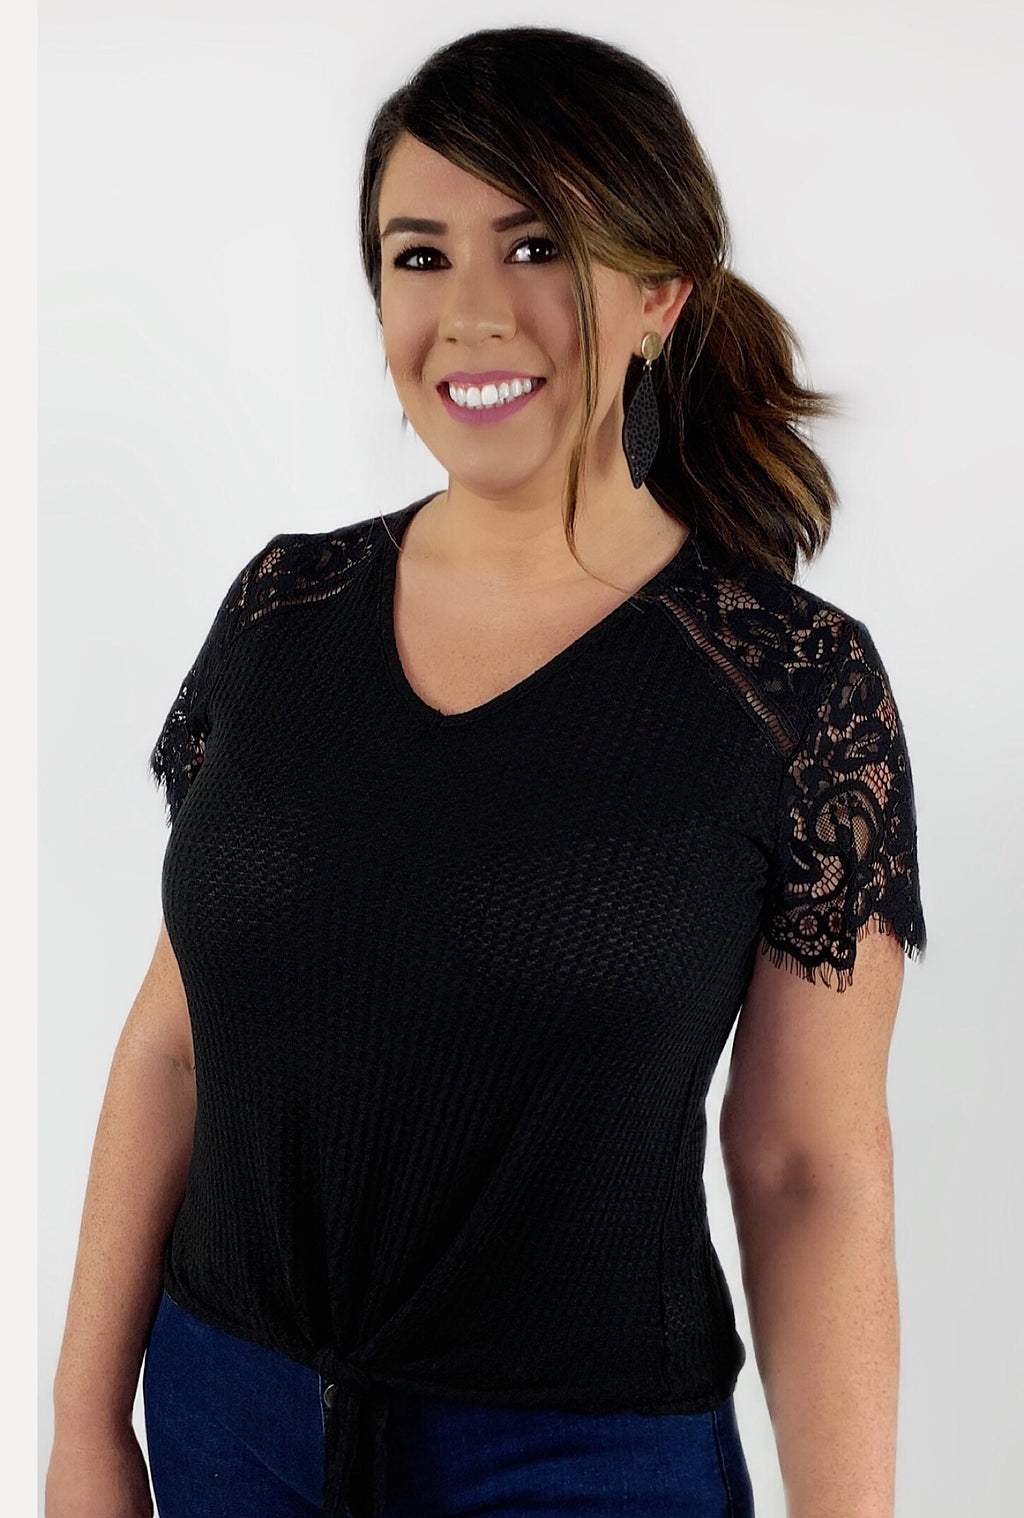 Lace Tie Top - Bellamie Boutique